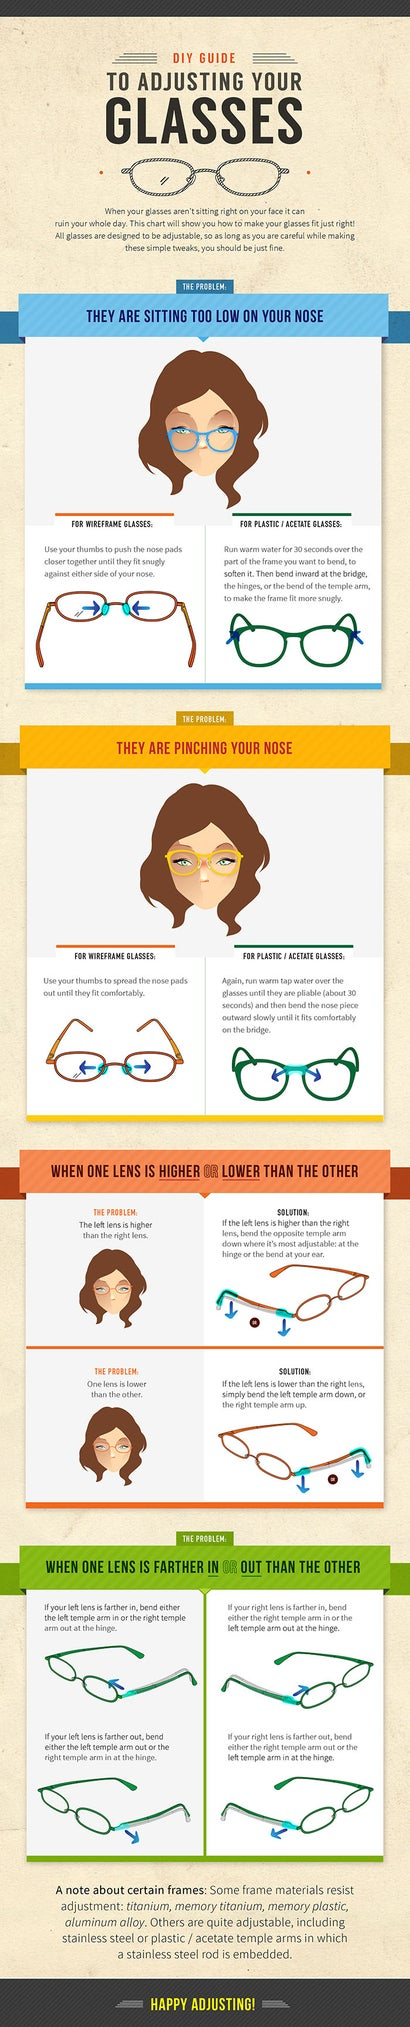 A DIY Guide To Adjusting Your Own Glasses